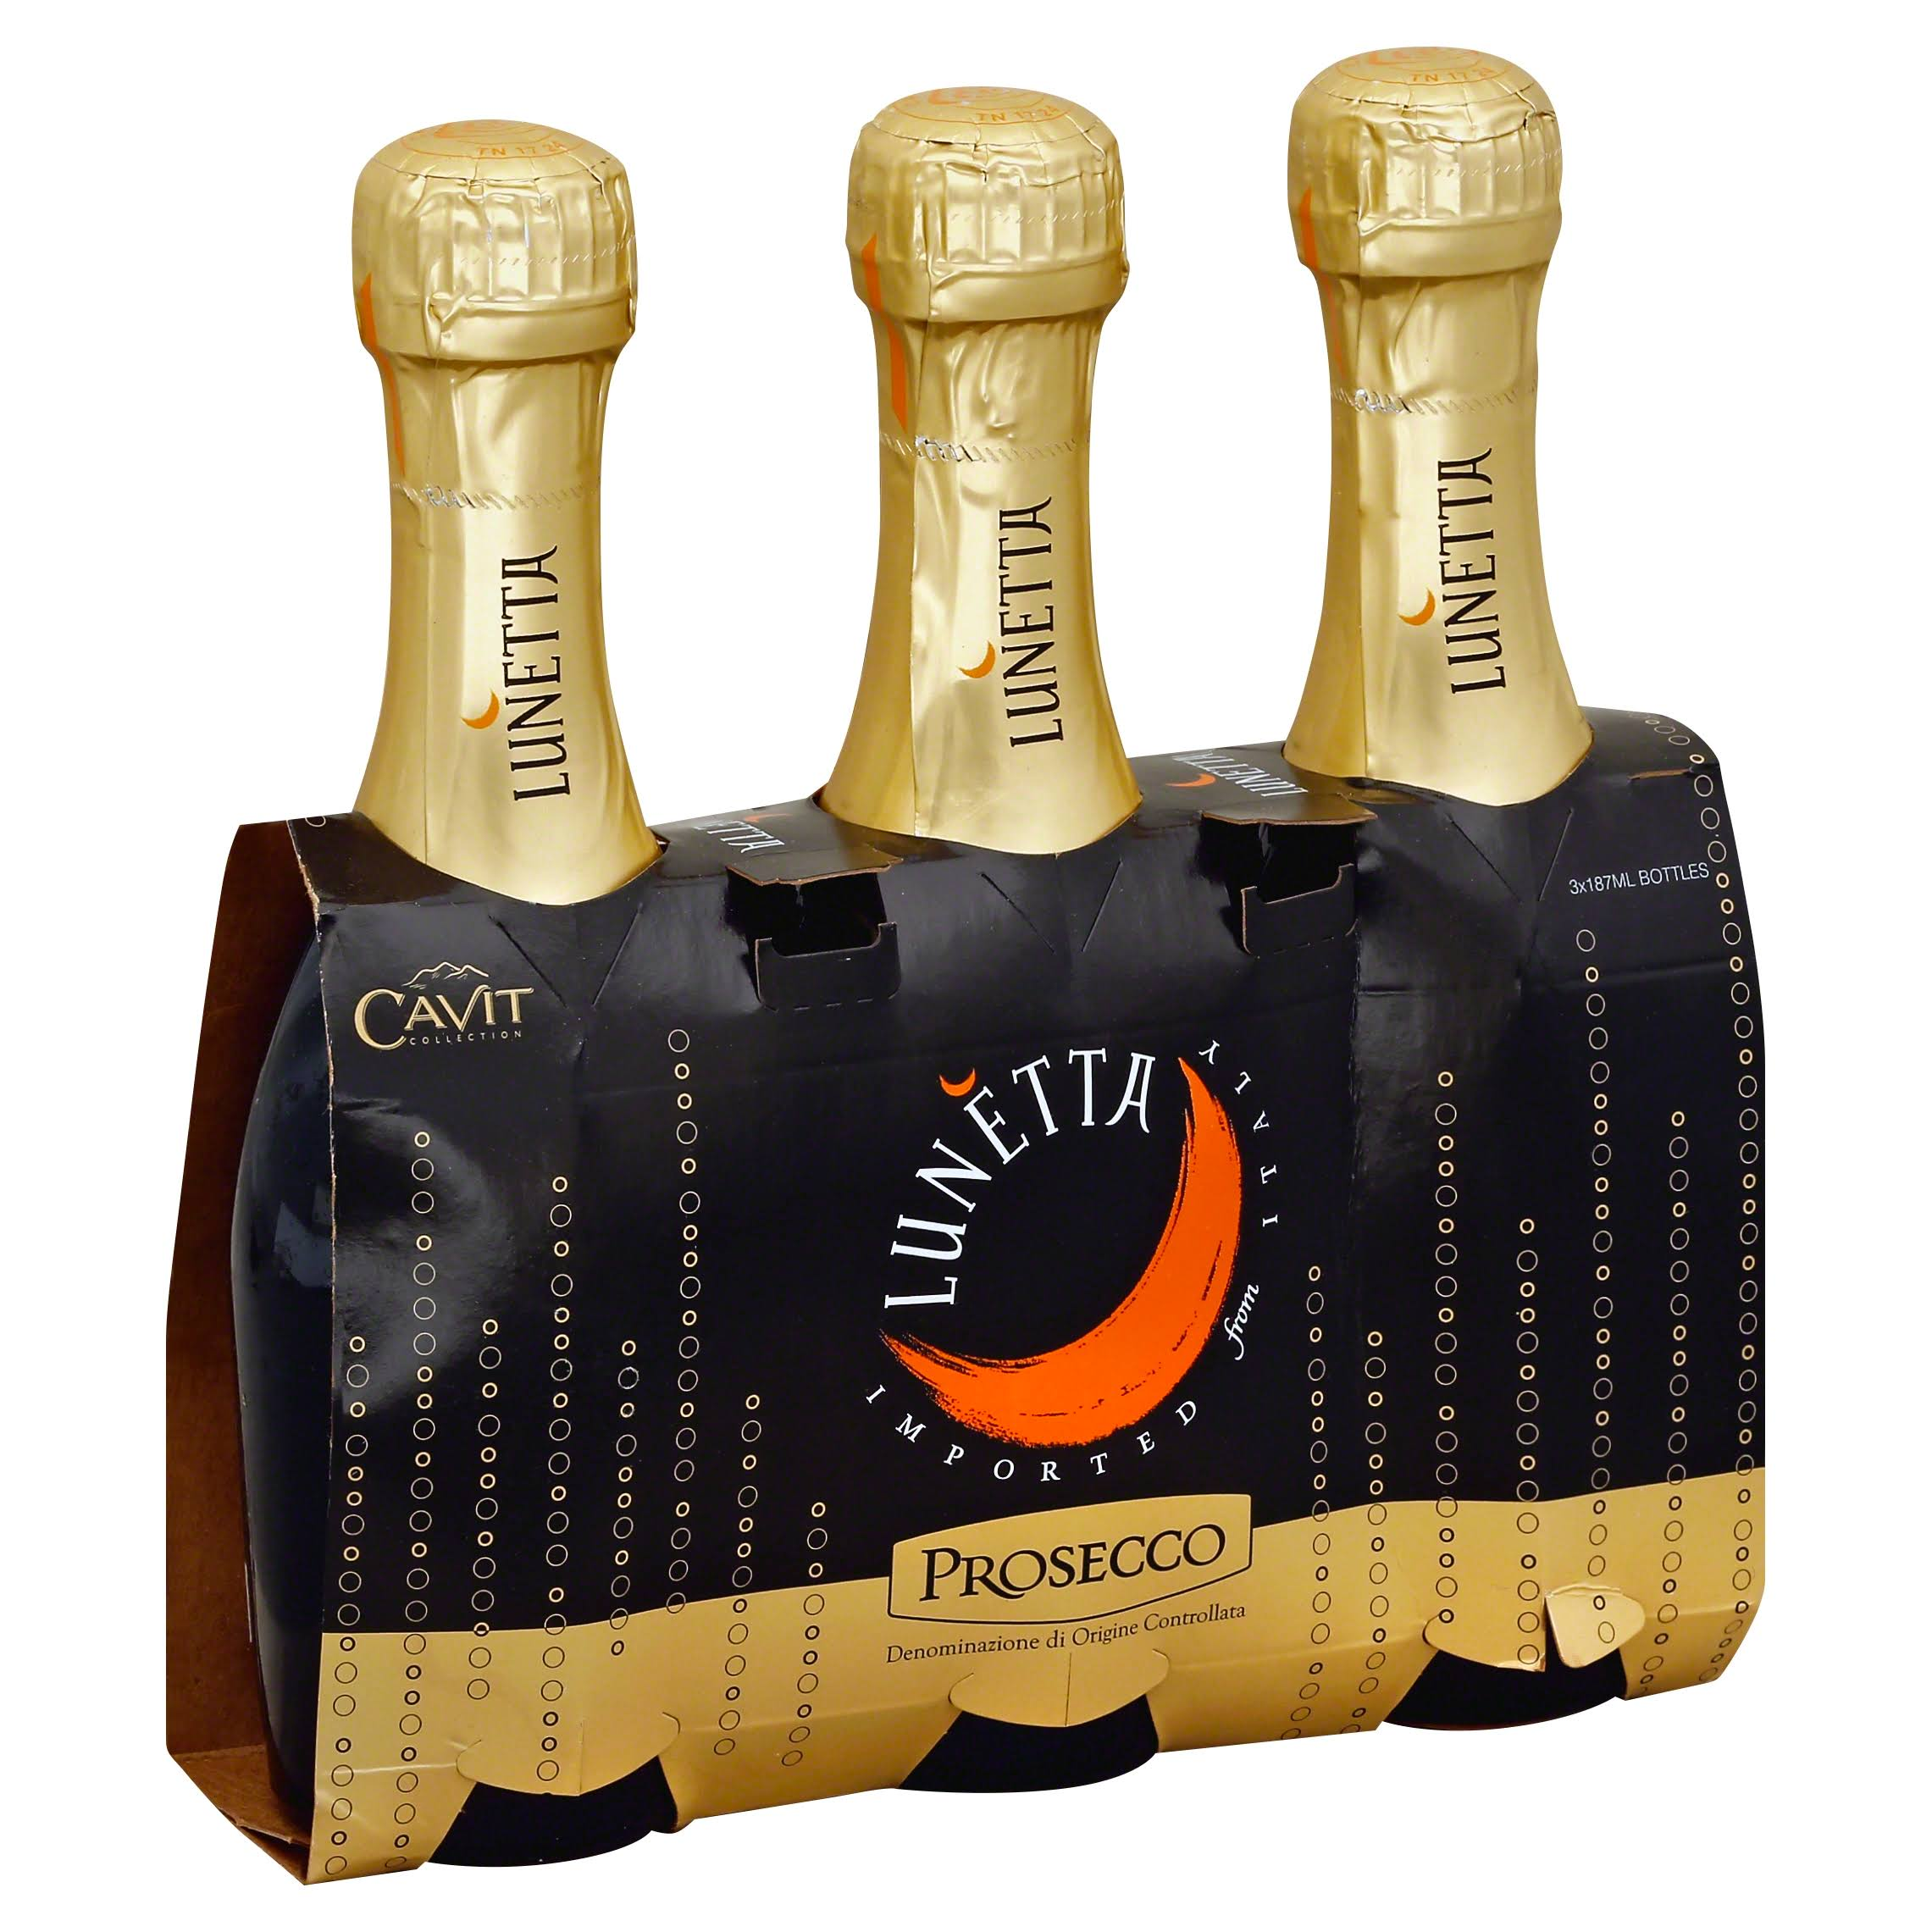 Lunetta Cavit Collection Prosecco - 3 pack, 187 ml bottles